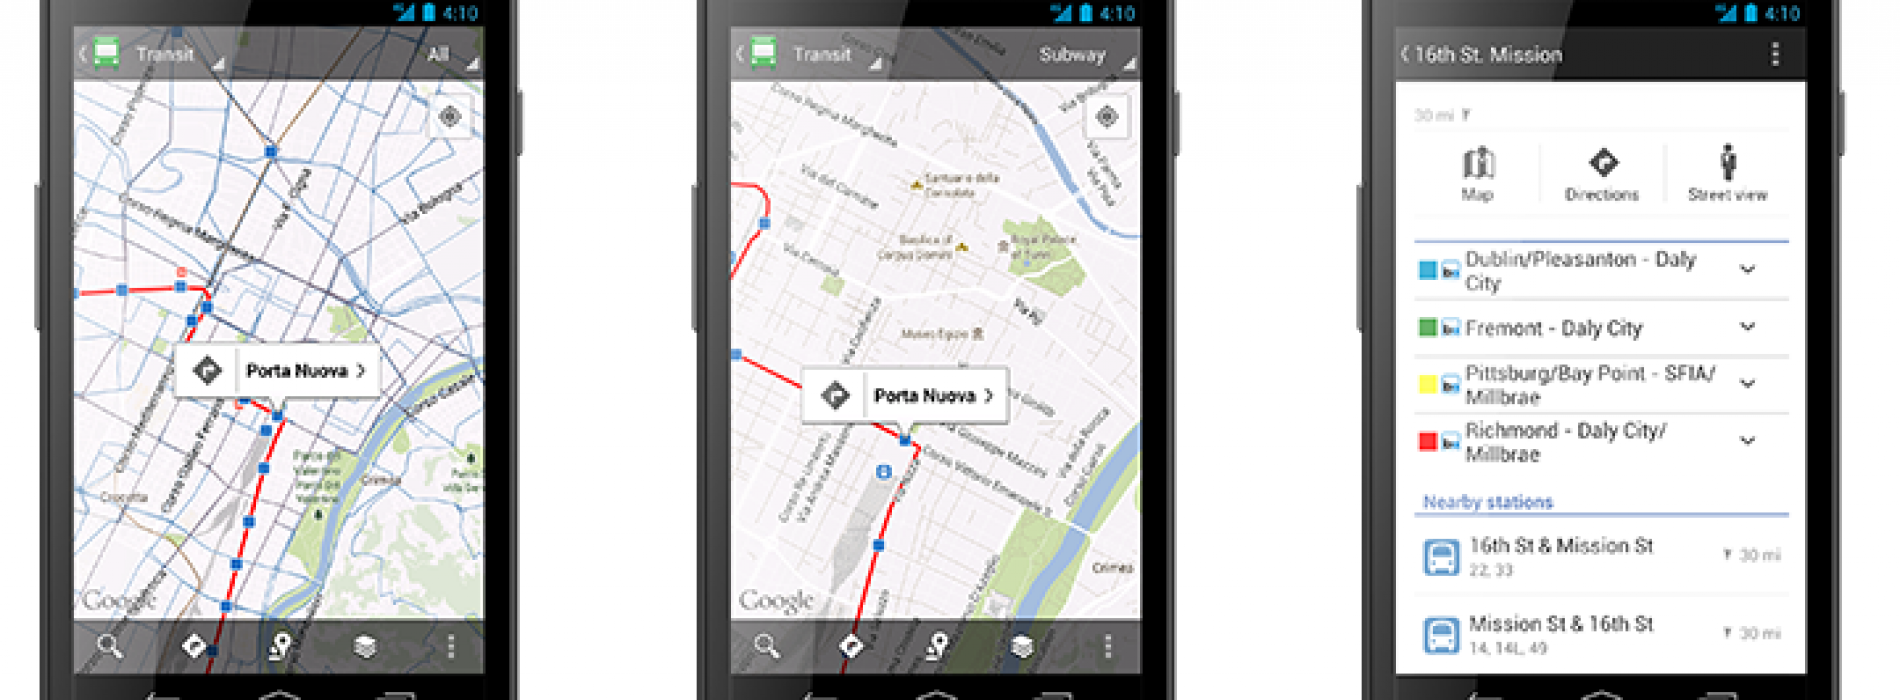 Public transit schedules for Google Maps reaches one million